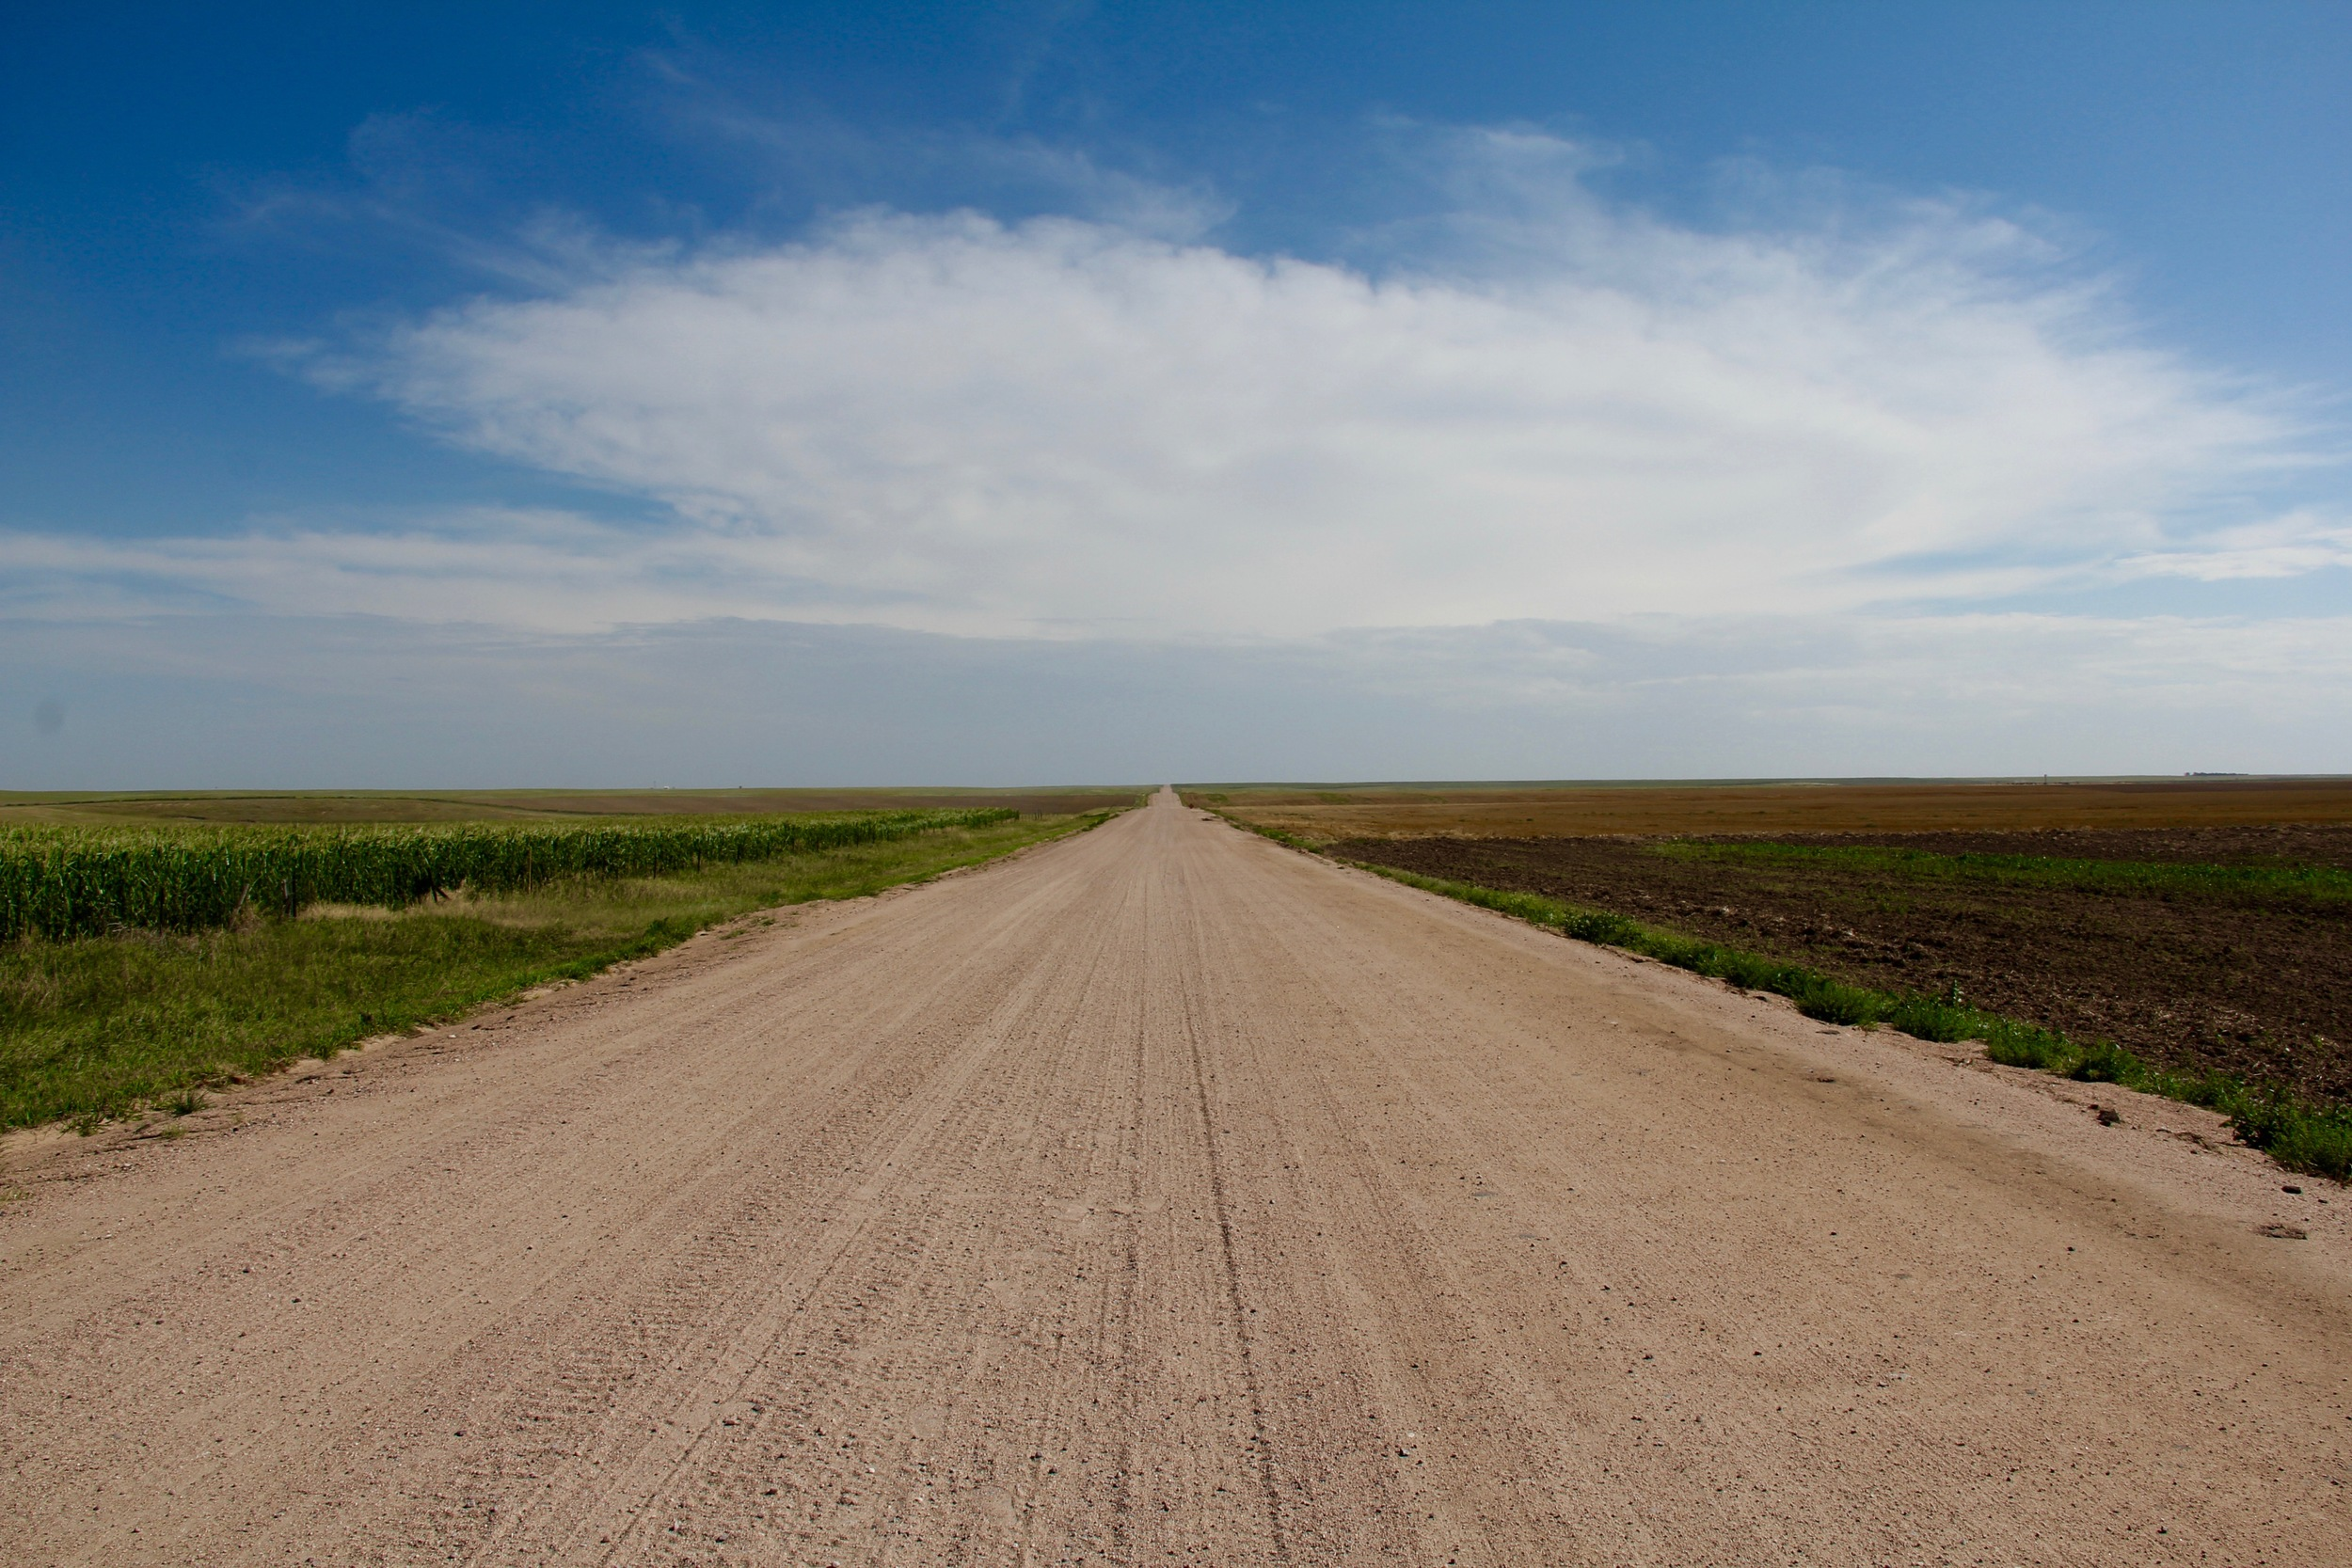 We stopped in Kansas to document the nothingness.